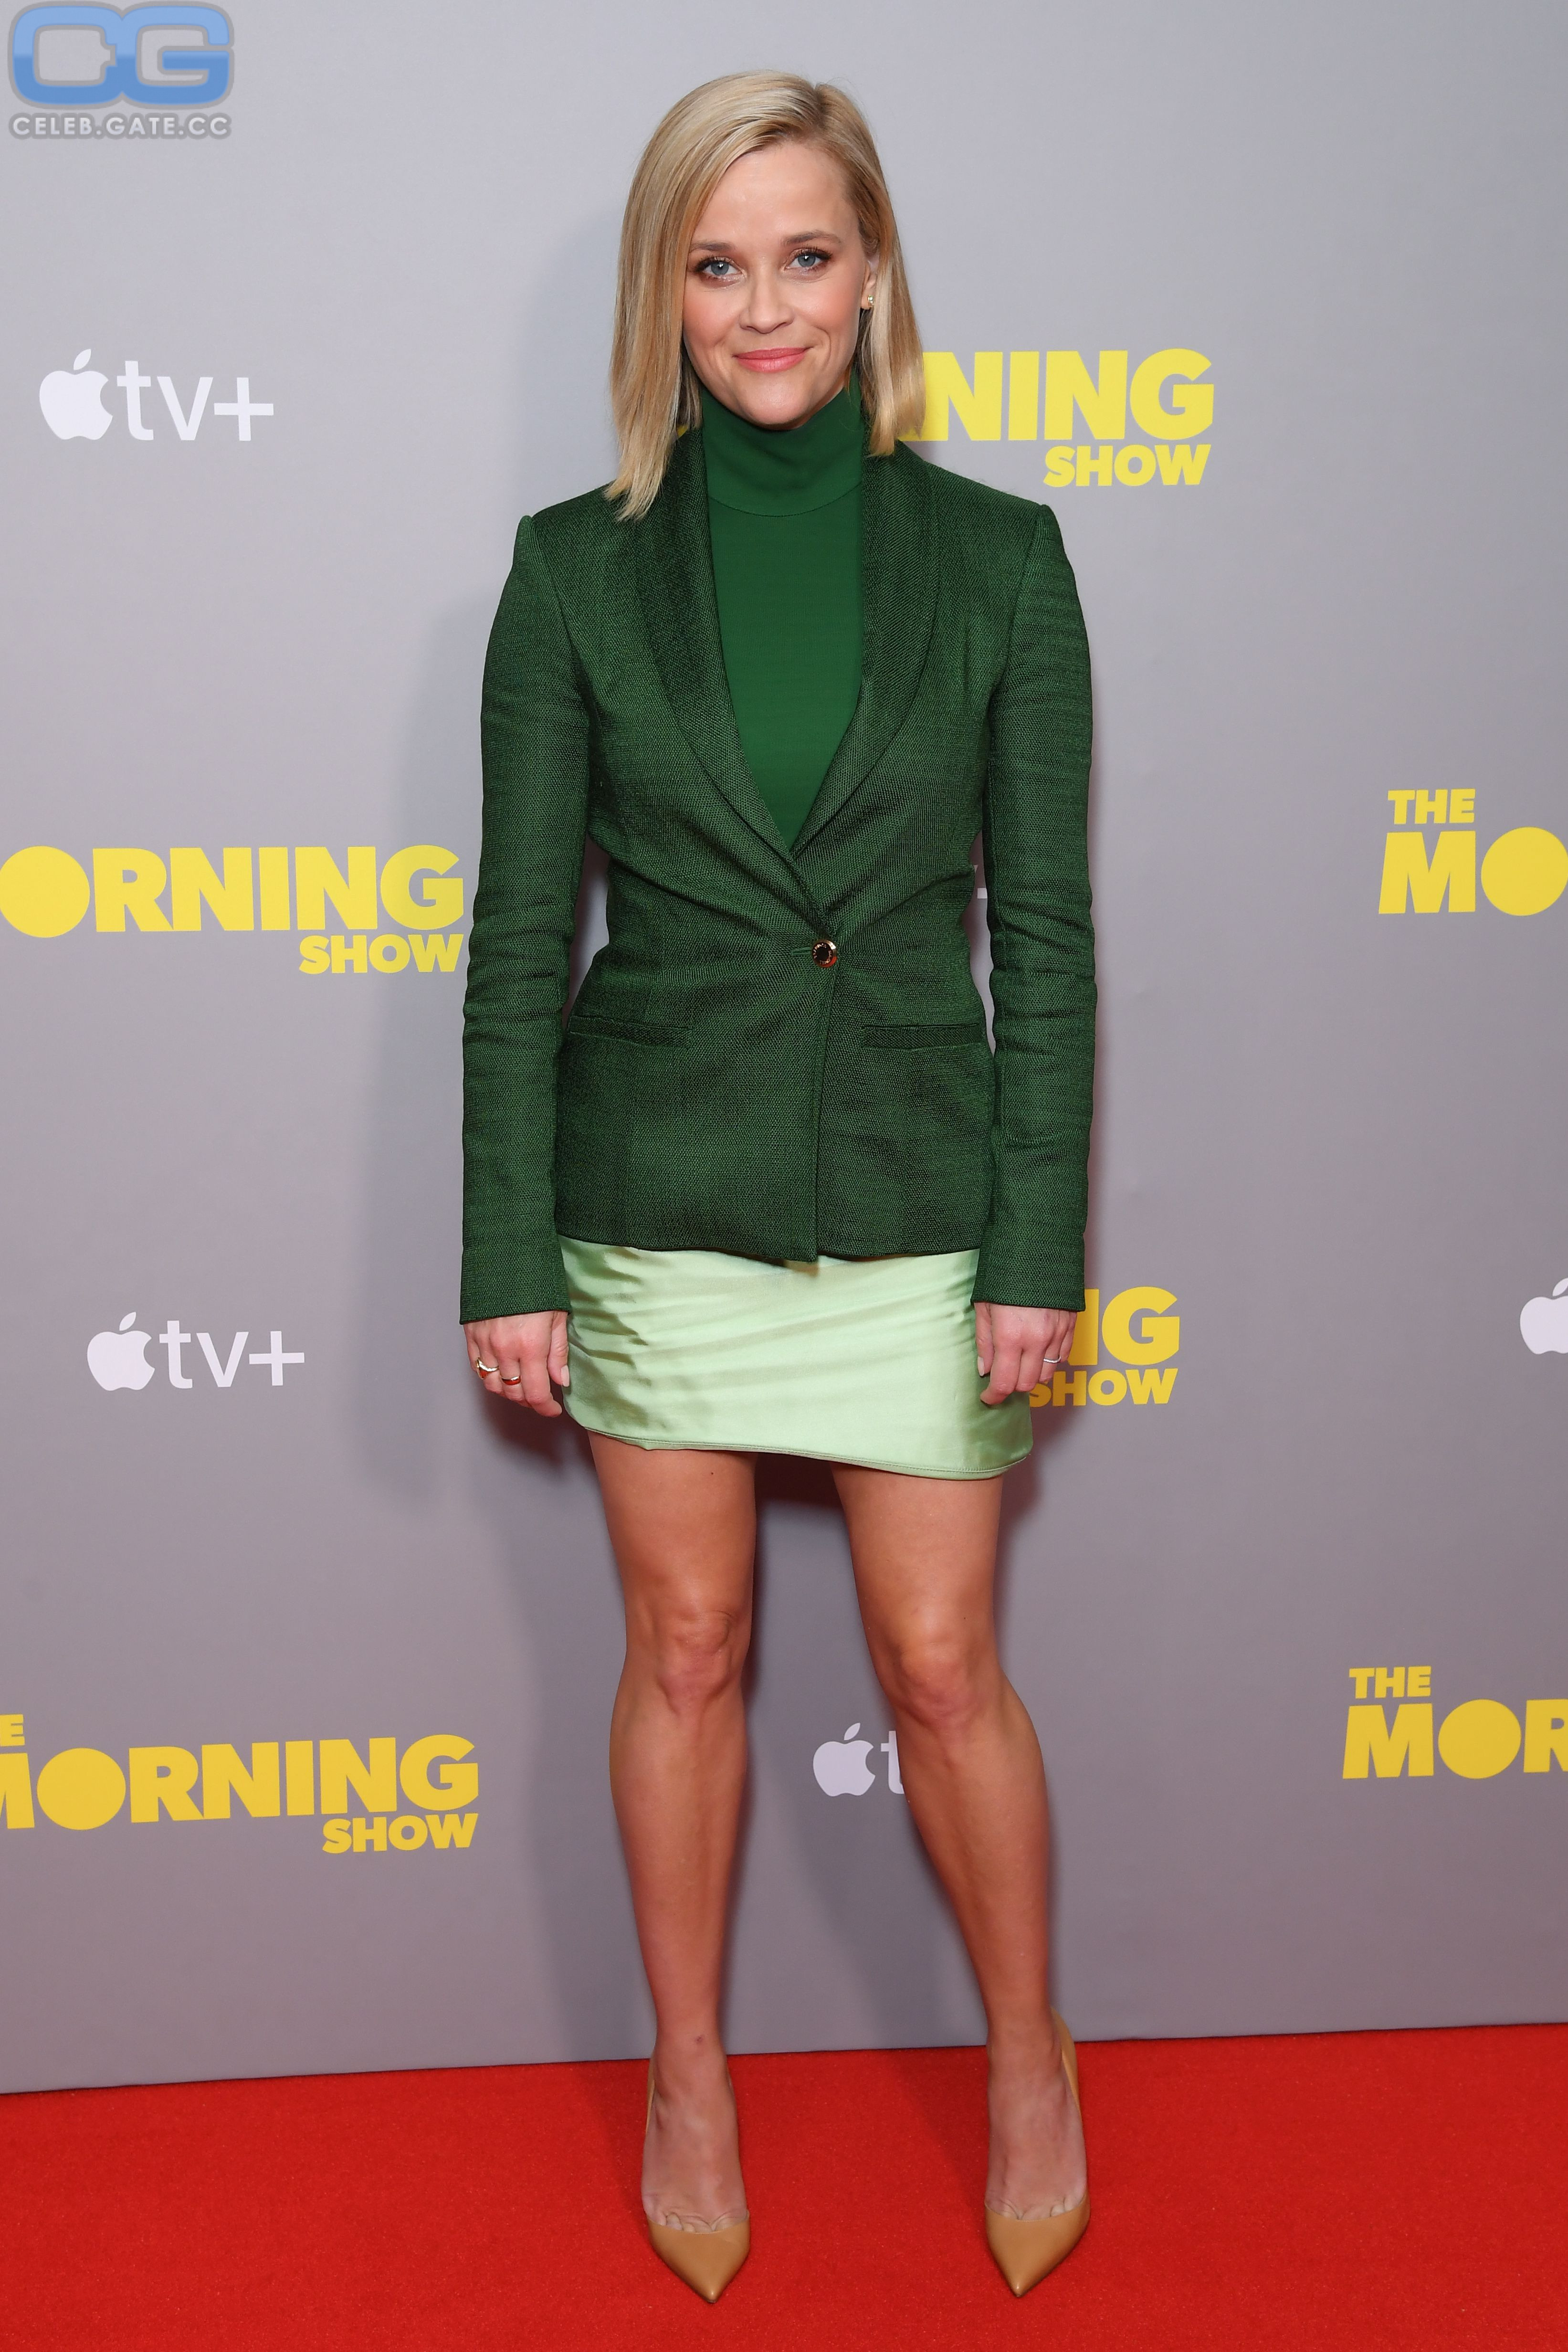 Reese Witherspoon nackte Prominente Videogalerie foto 4